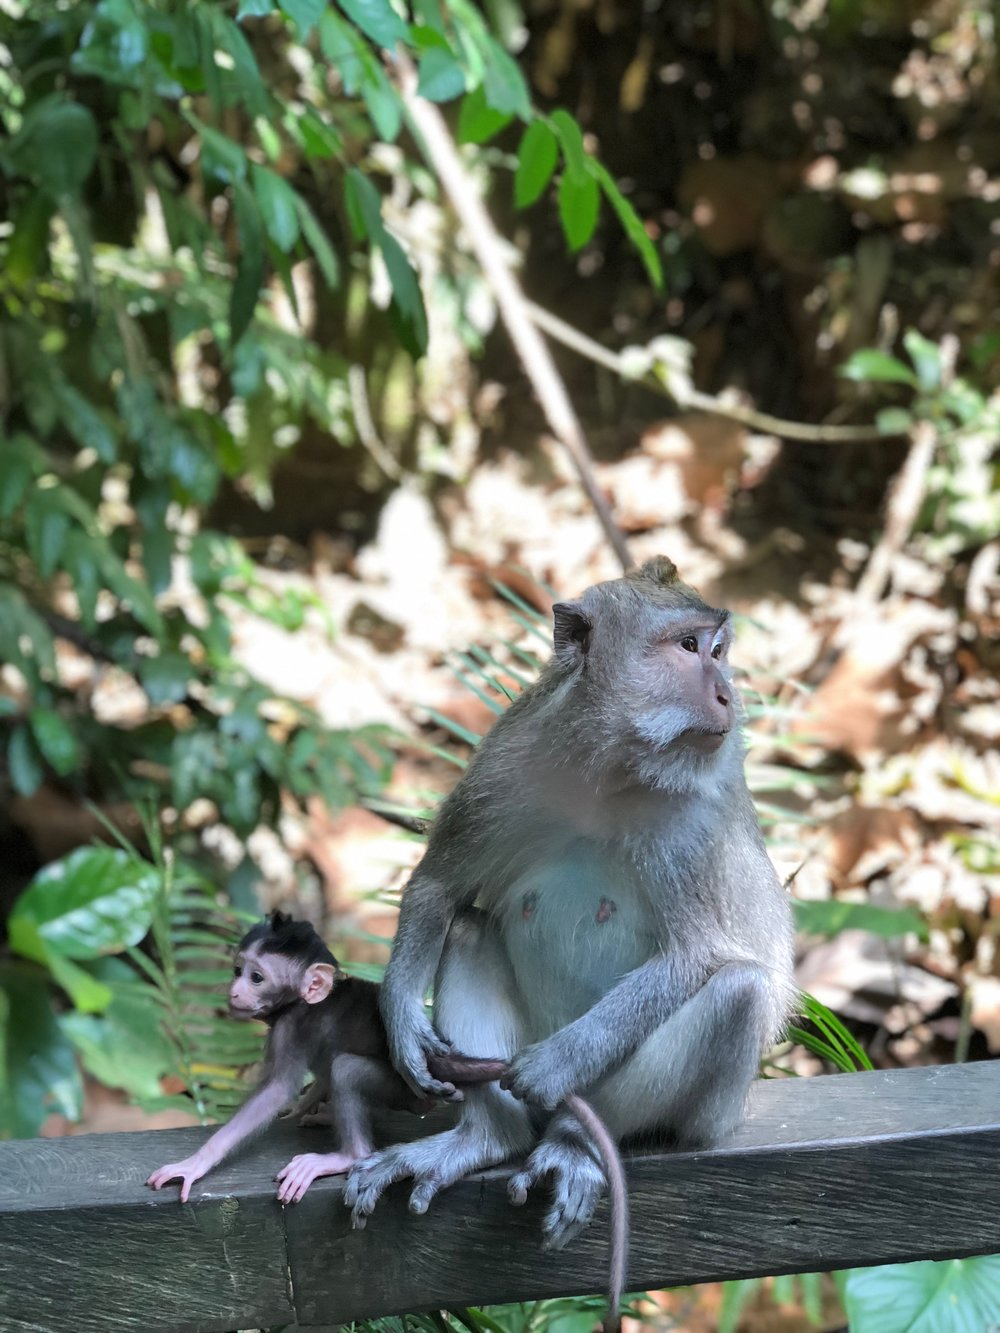 Hindus, like those on Bali, revere monkeys, in part because one of their main gods, Hanuman, is simian